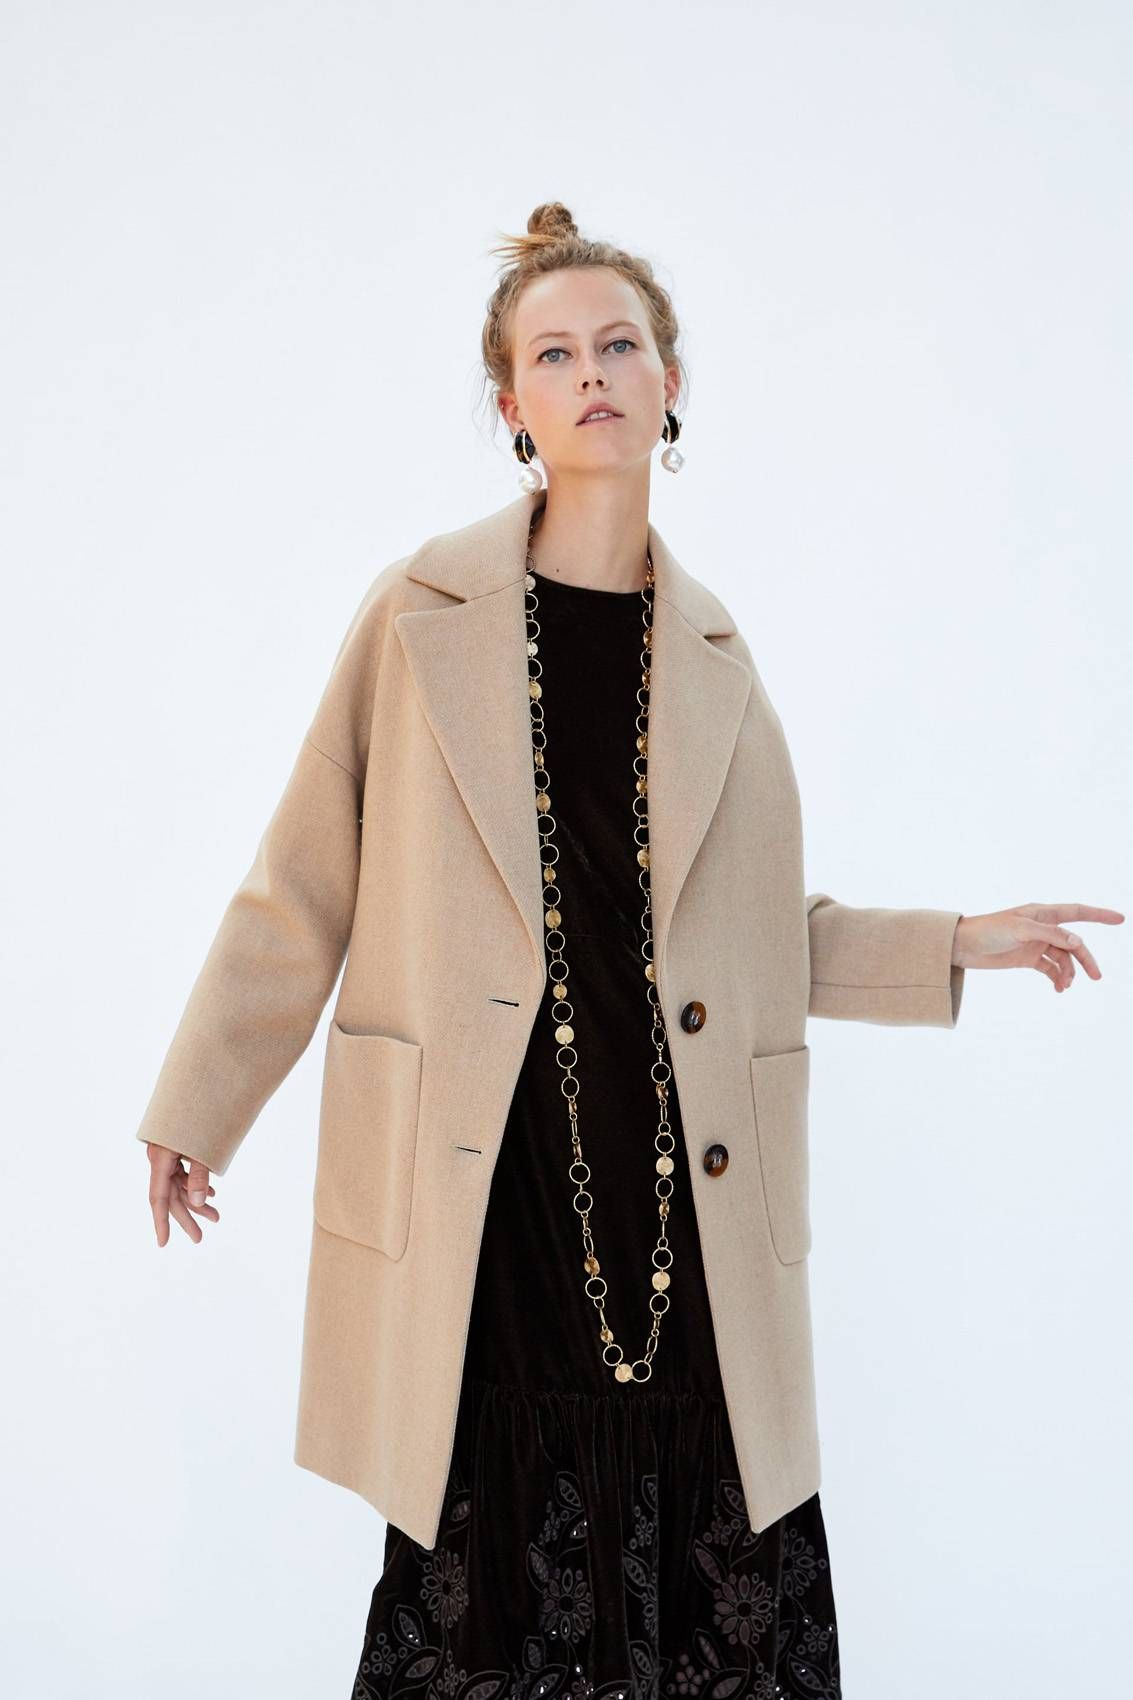 I Compared All 400 Zara Coats And These Are The Best Ones Zara Coat Coat Fashion [ 1700 x 1133 Pixel ]